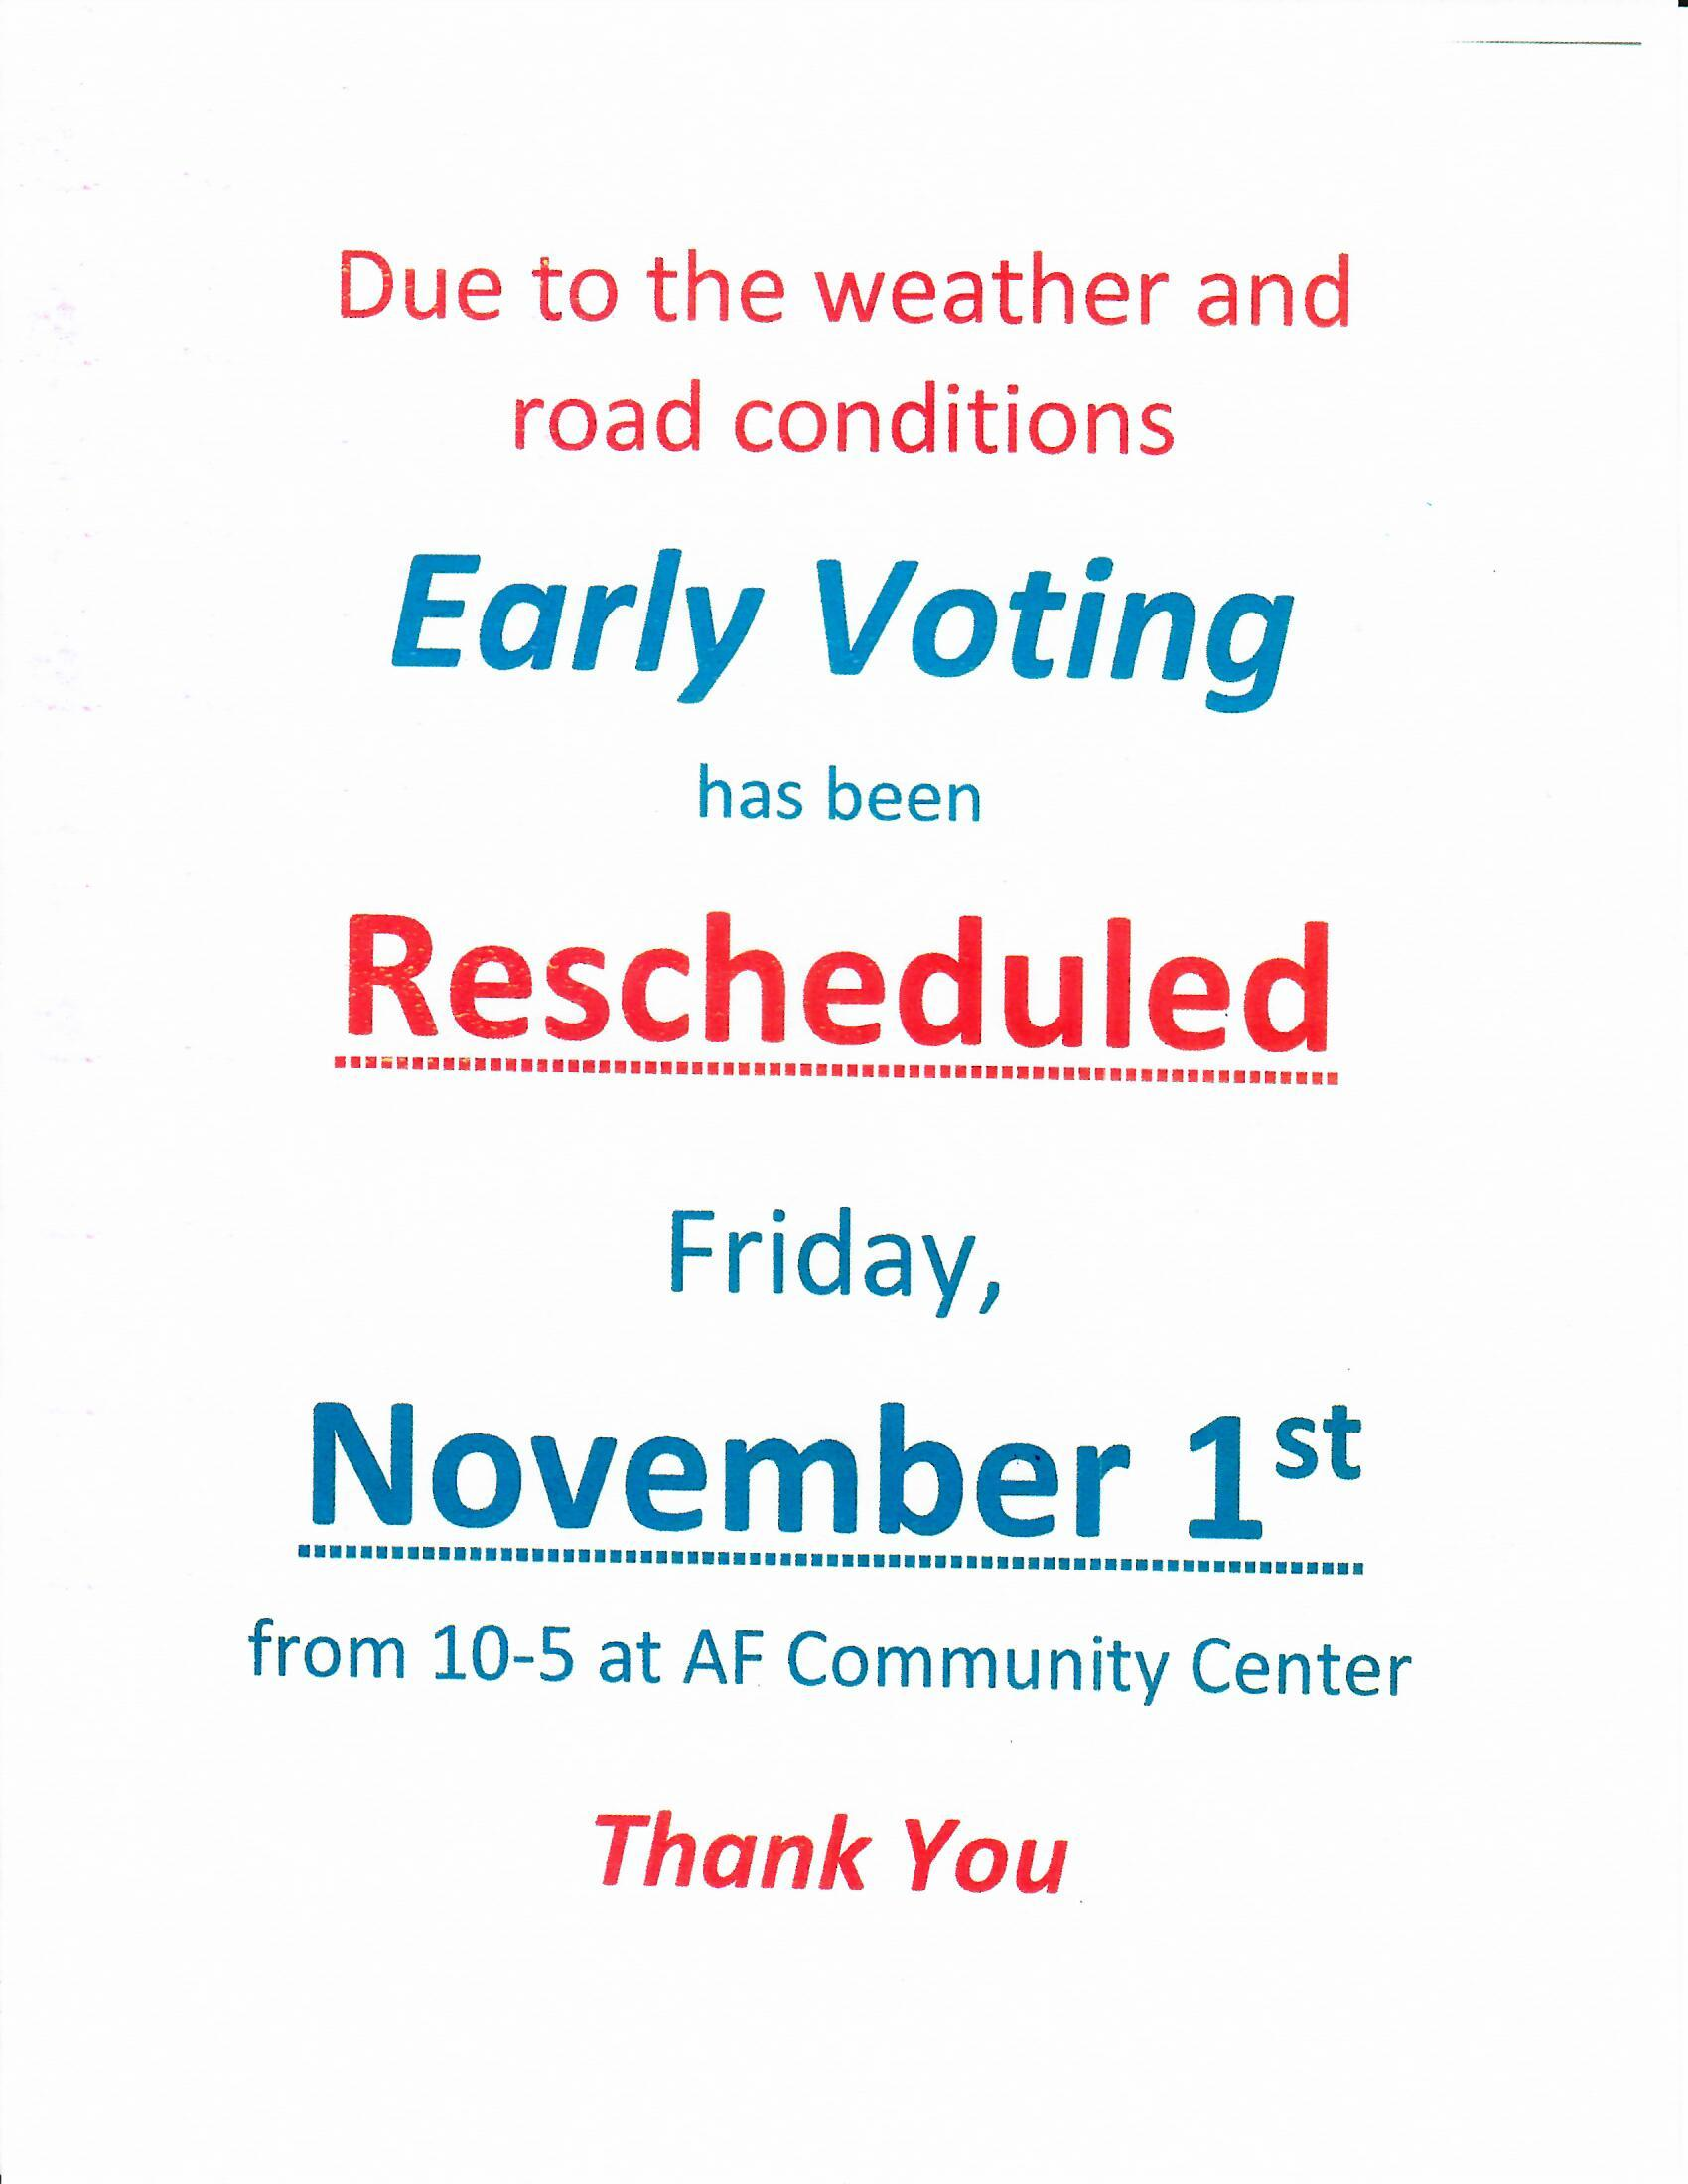 Early Voting postponed to November 1, 2019